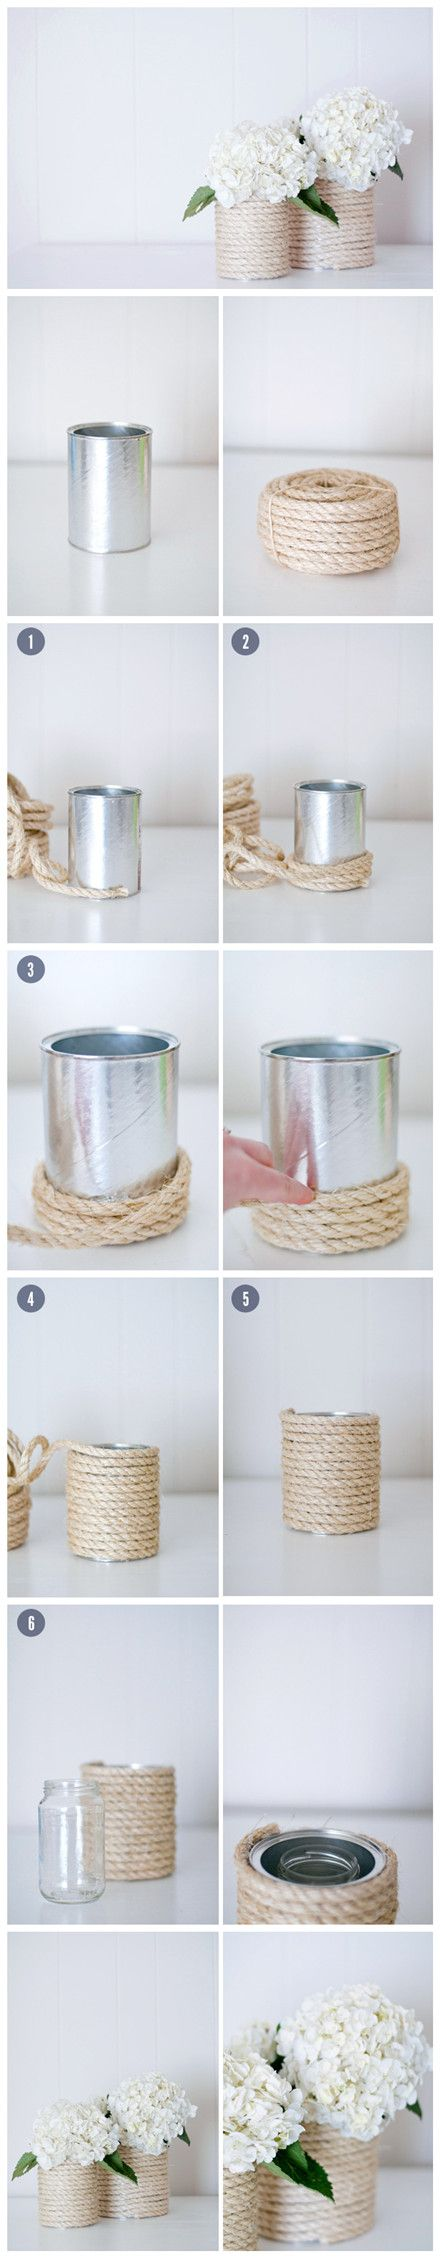 {diy rope vases}...use old baby formula cans? Cute!